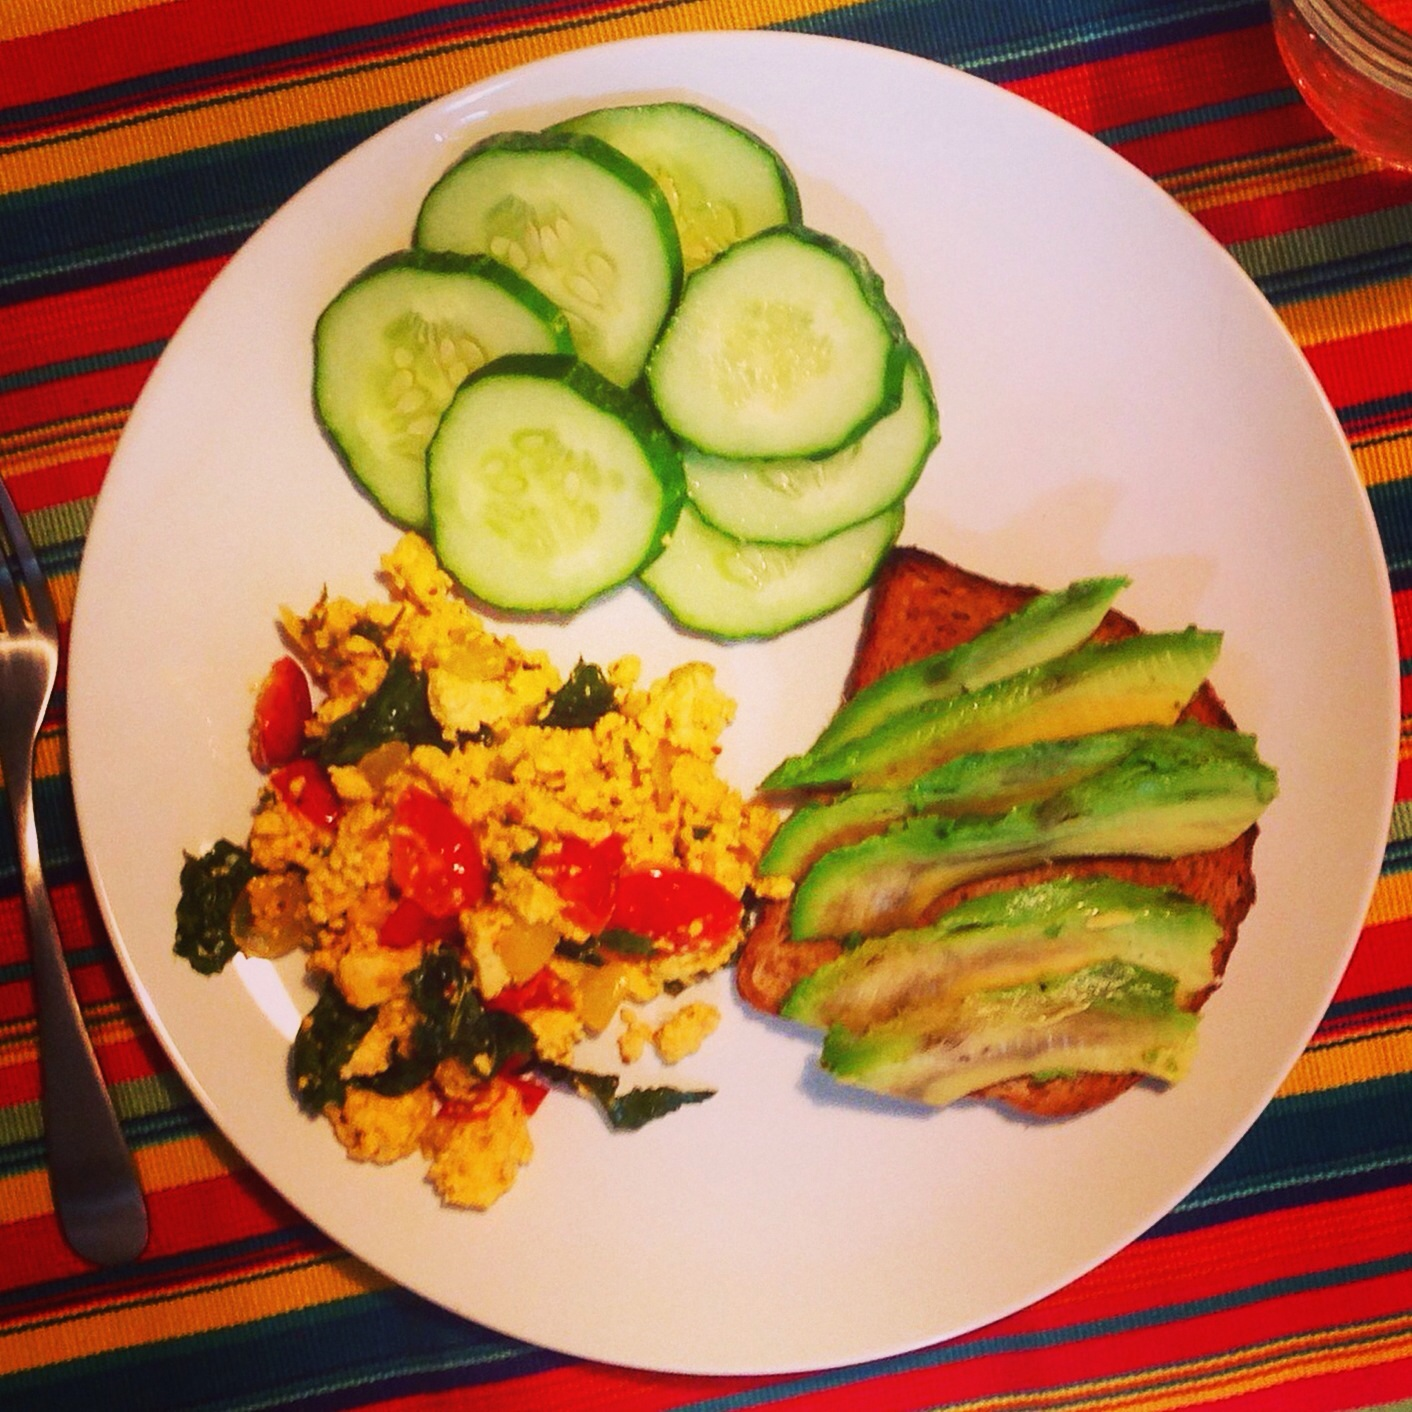 Tofu scramble with a side of cuke slices